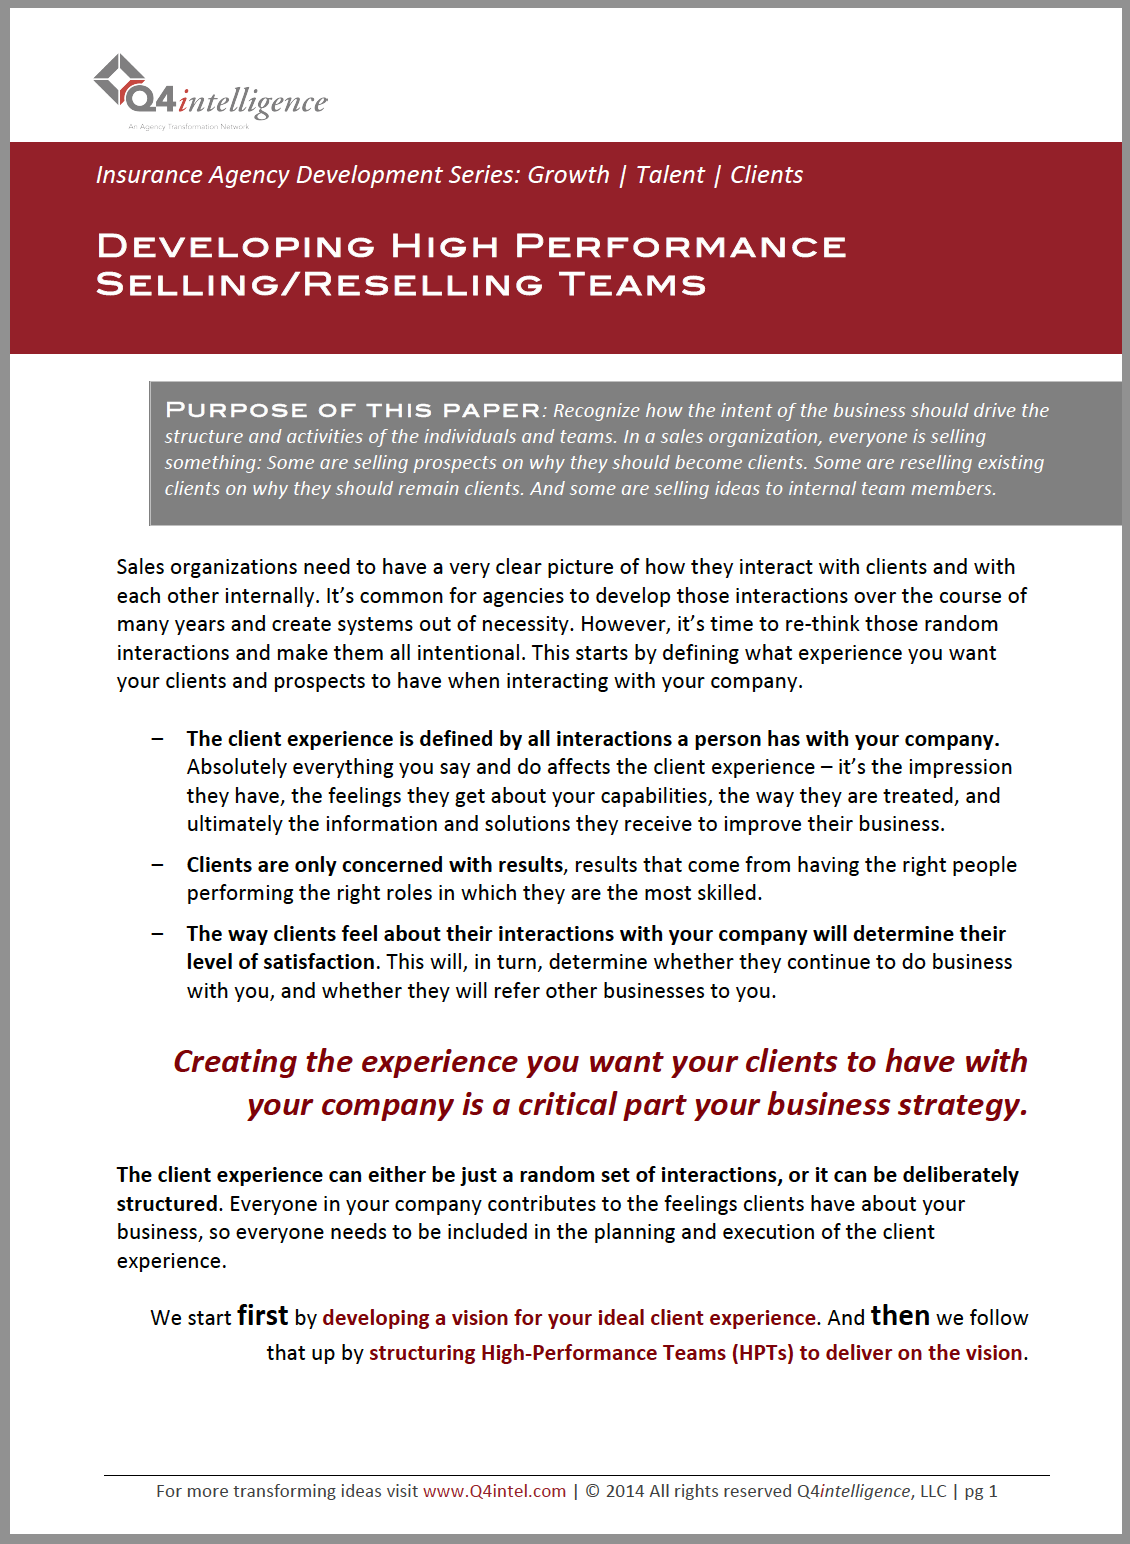 Developing High Performance Teams in your Insurance Agency